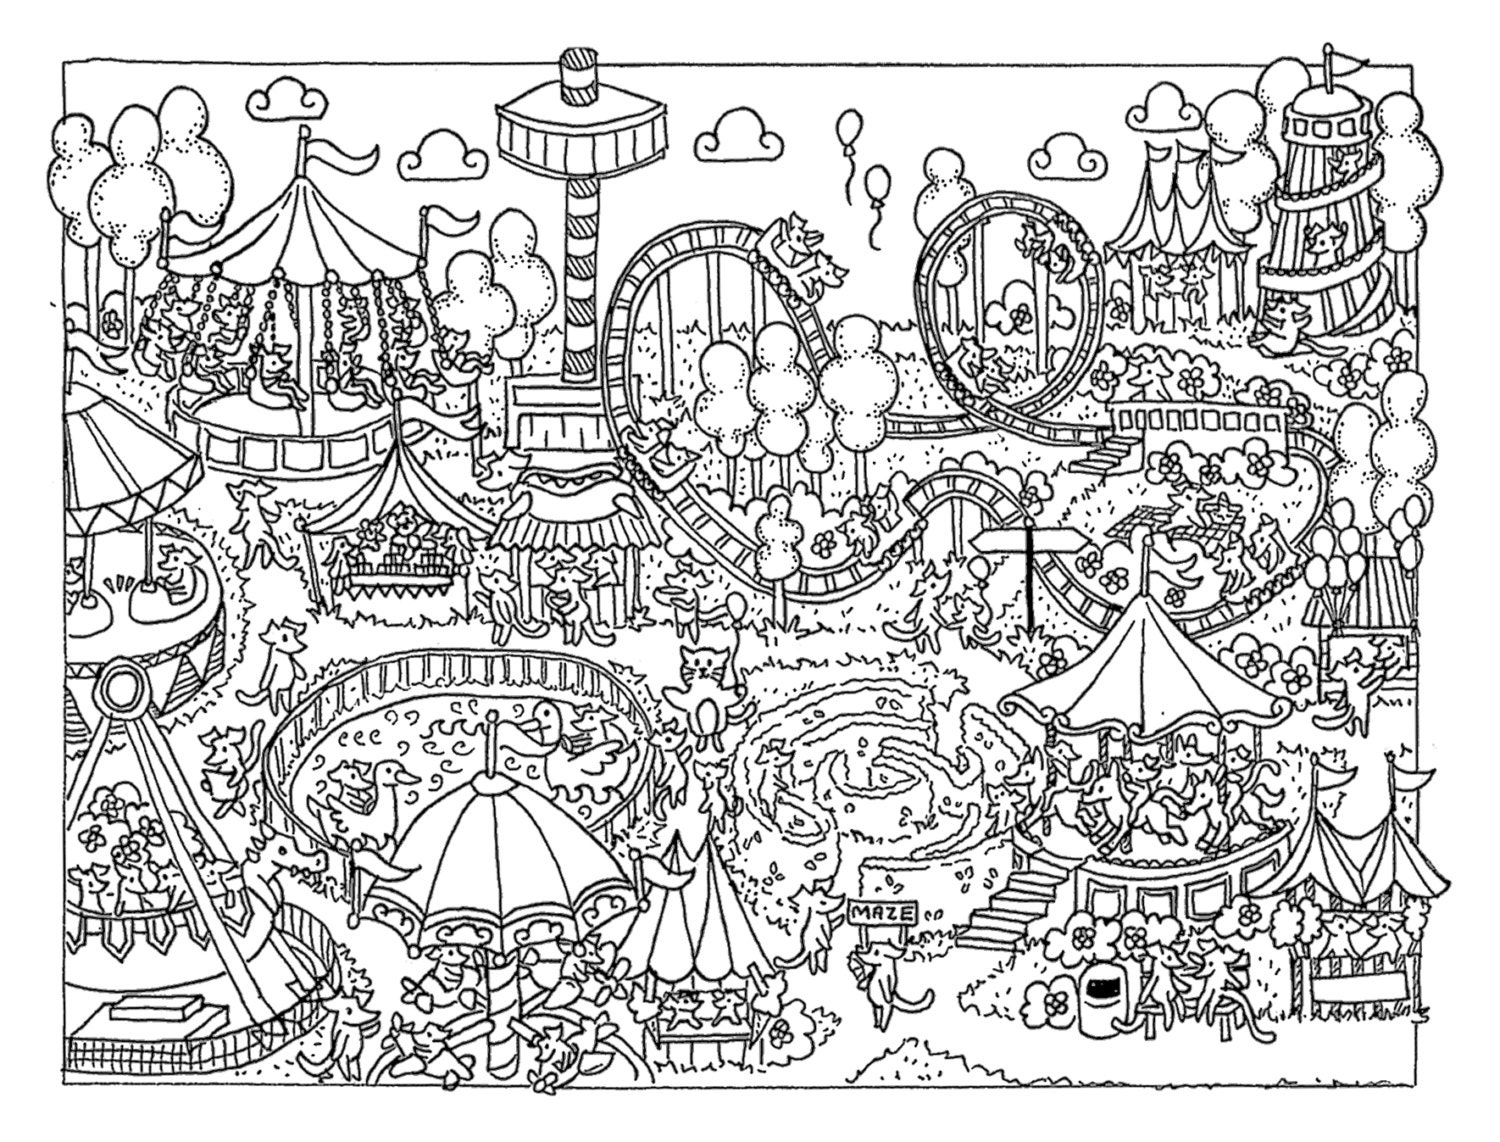 fun fair coloring pages - photo#11